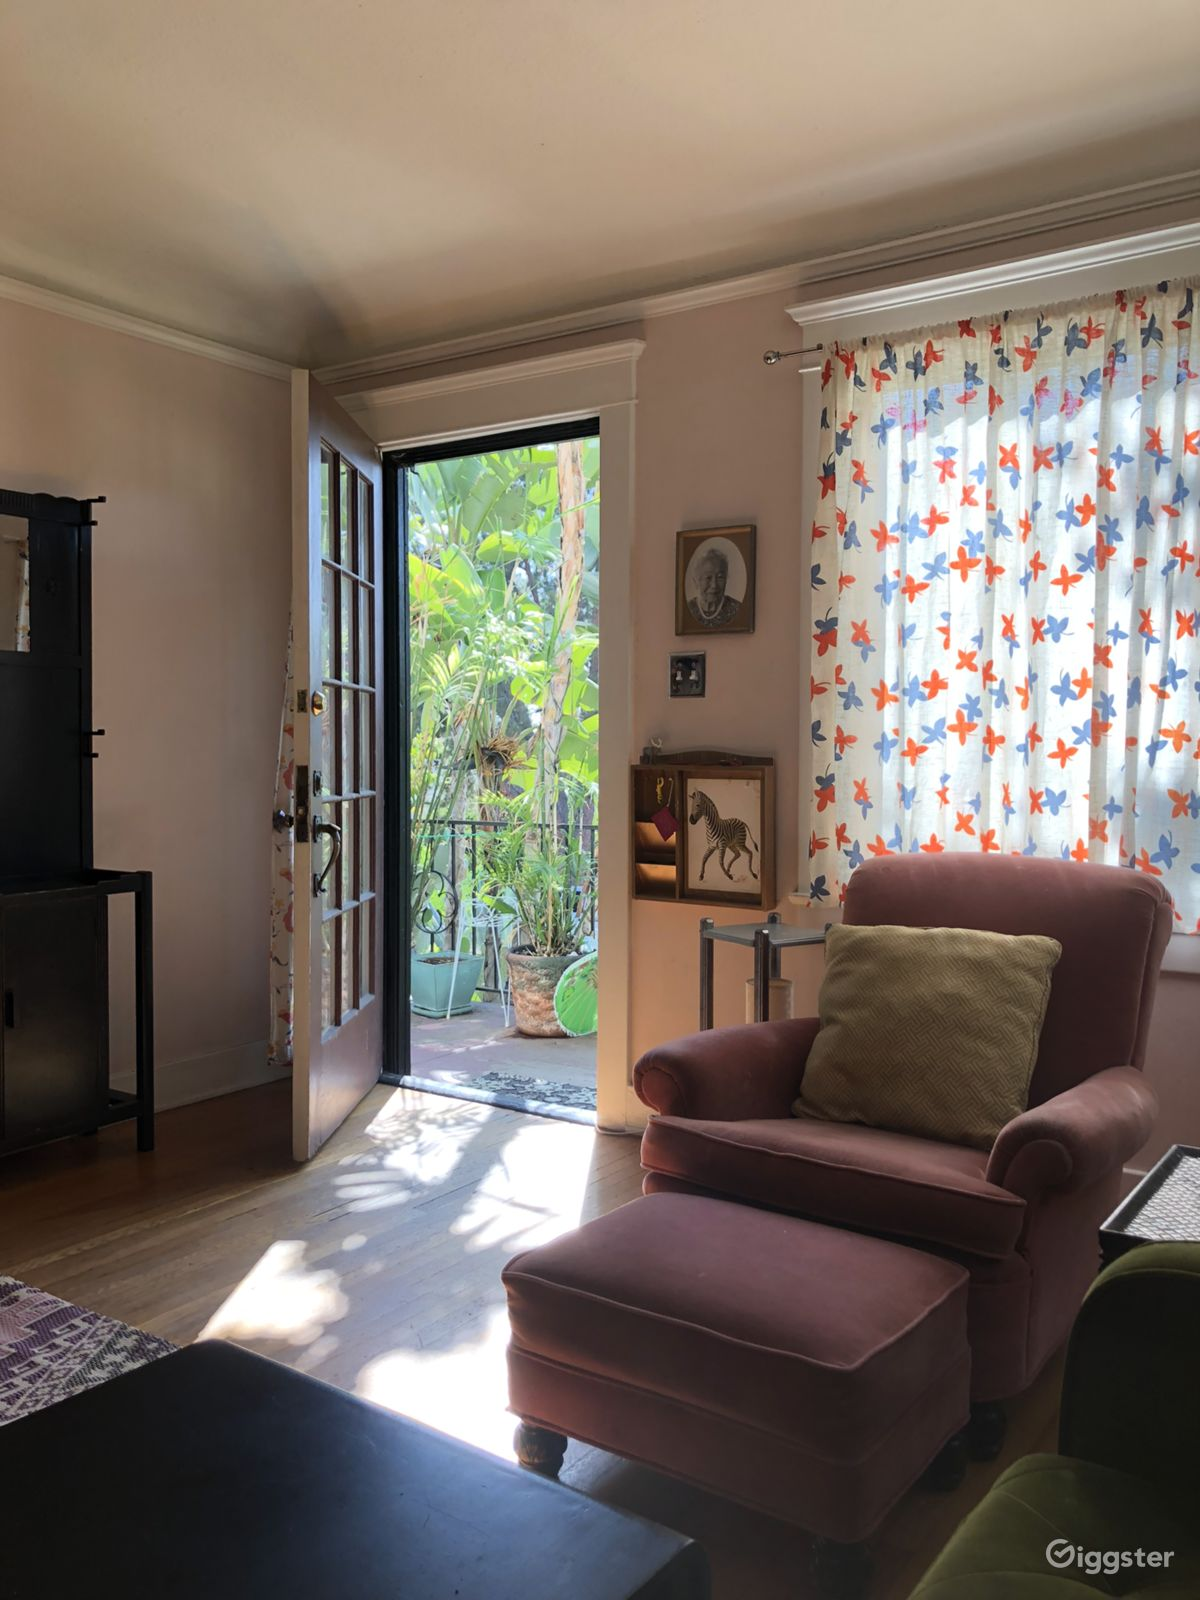 Rent The Apartment Condo Residential 1930 S Vintage Style Townhouse For Film